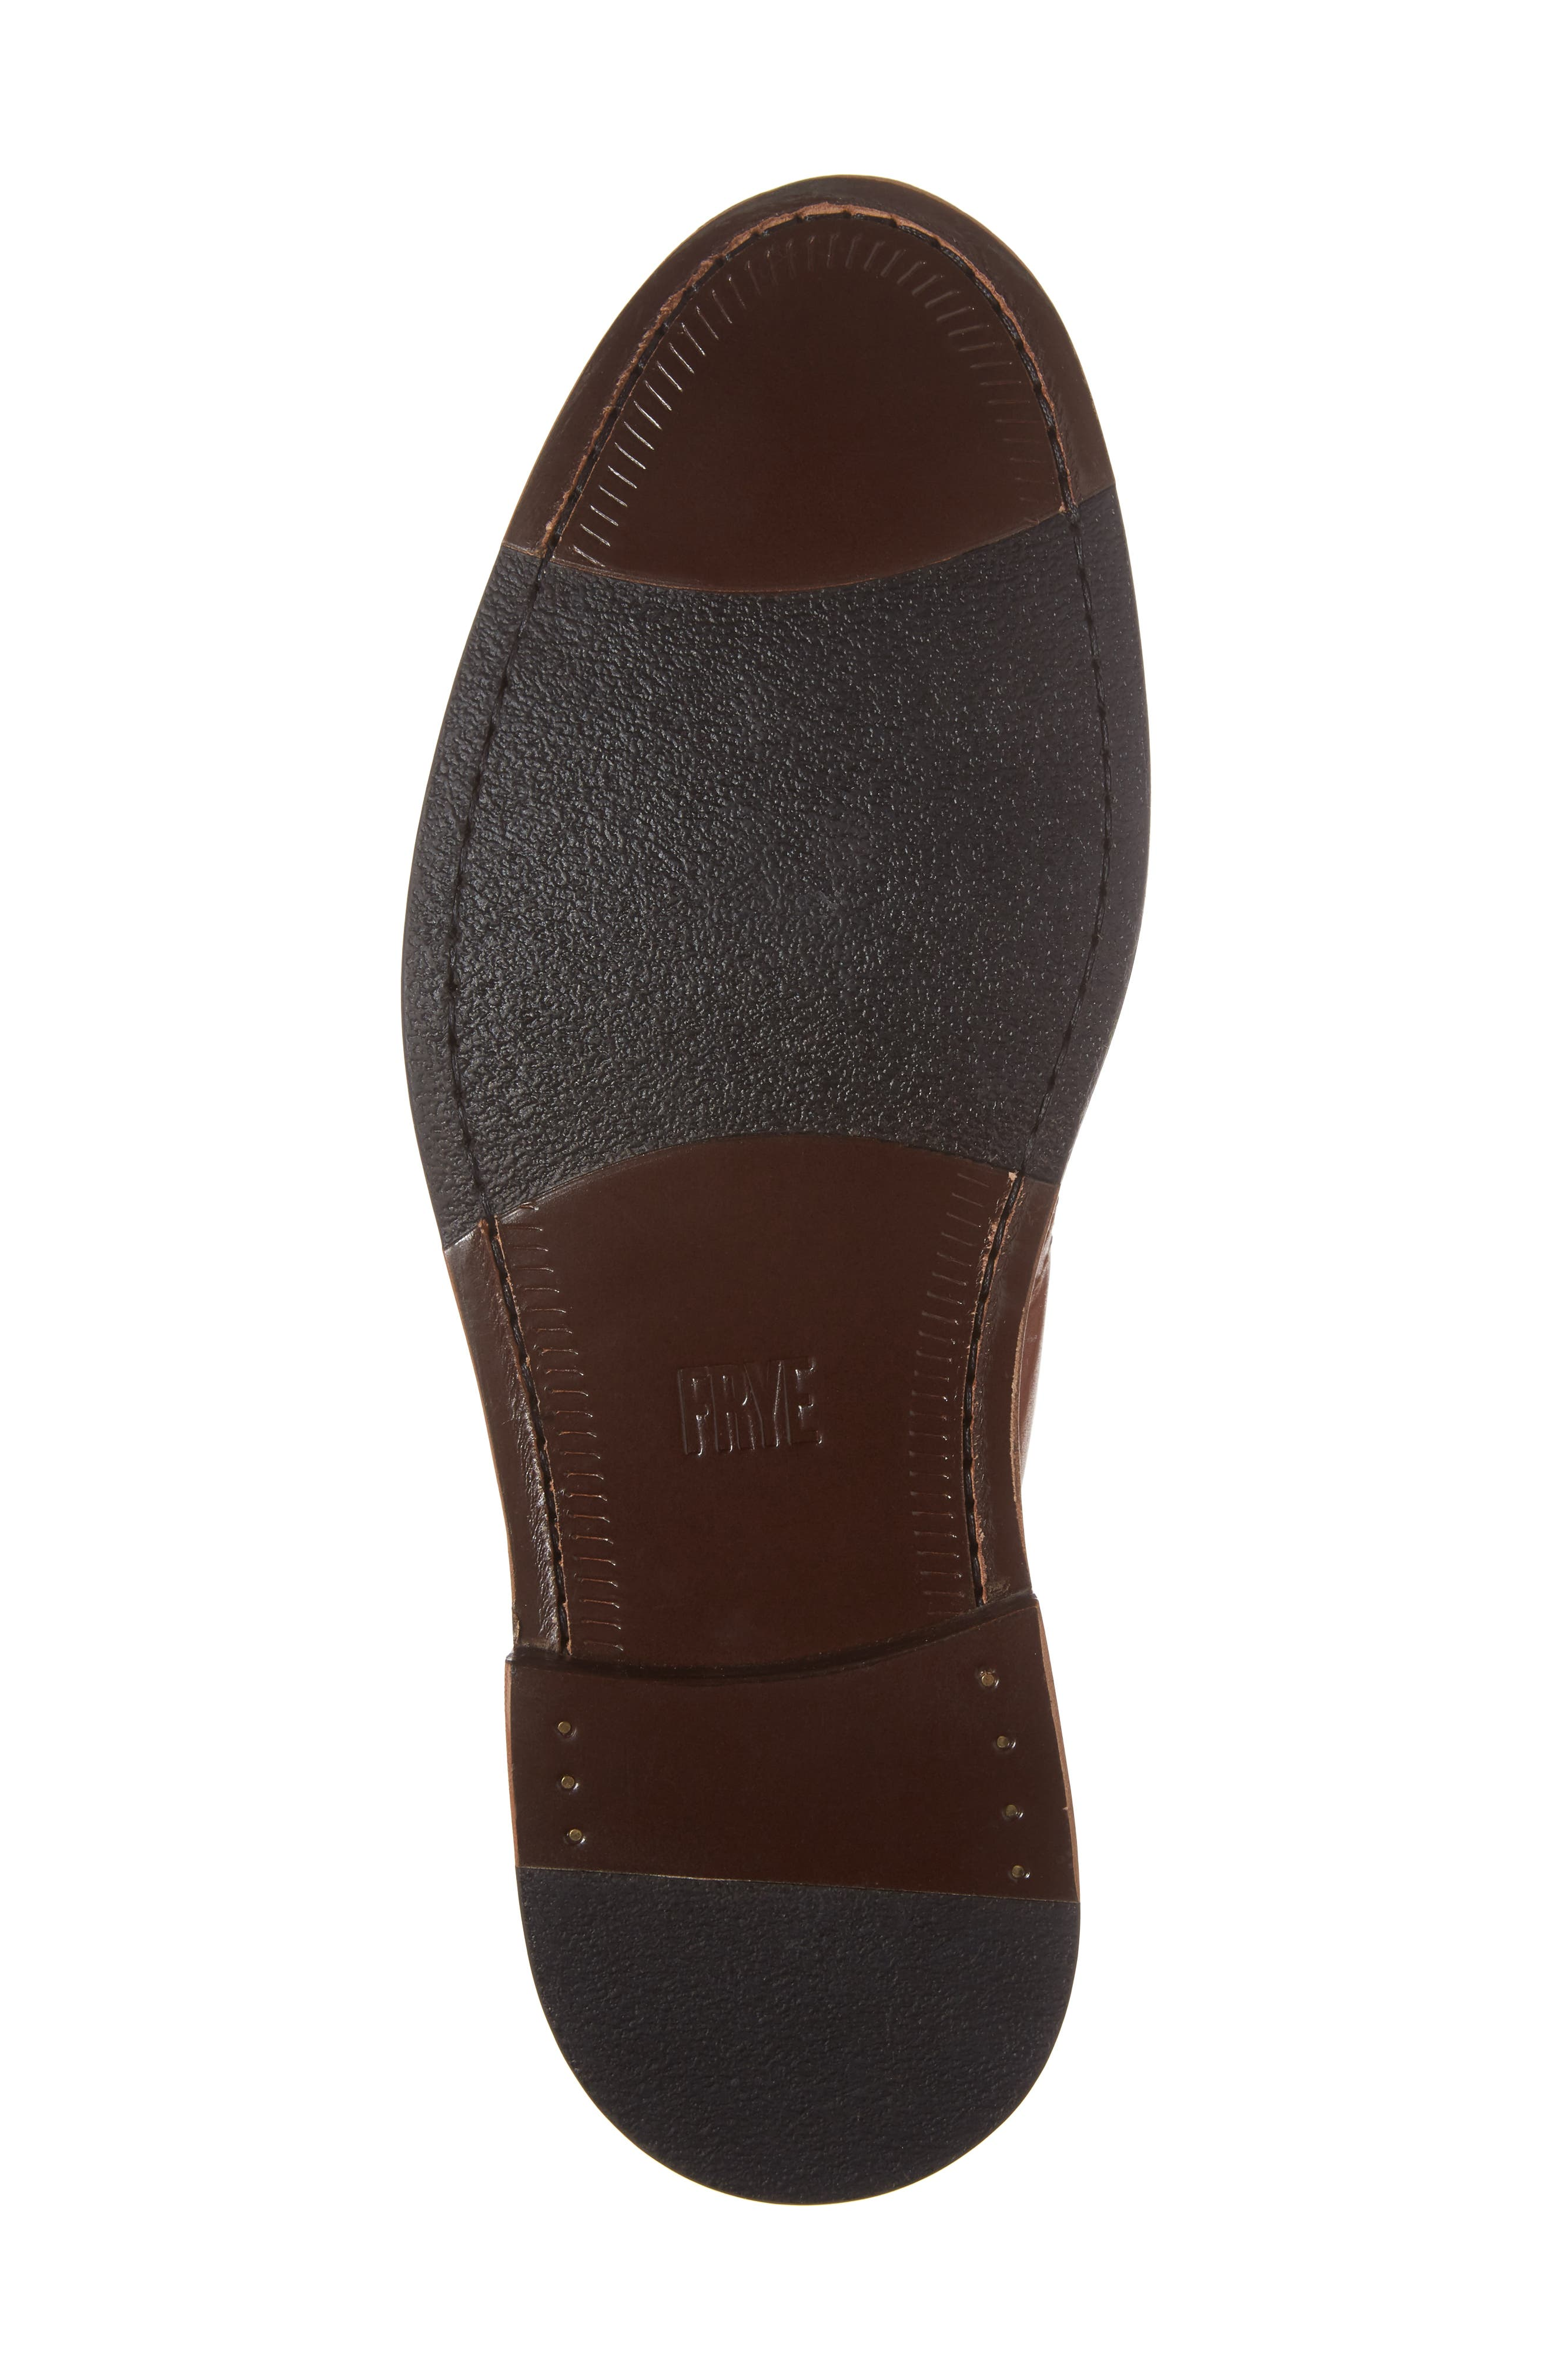 Mark Chukka Boot,                             Alternate thumbnail 6, color,                             Copper Leather